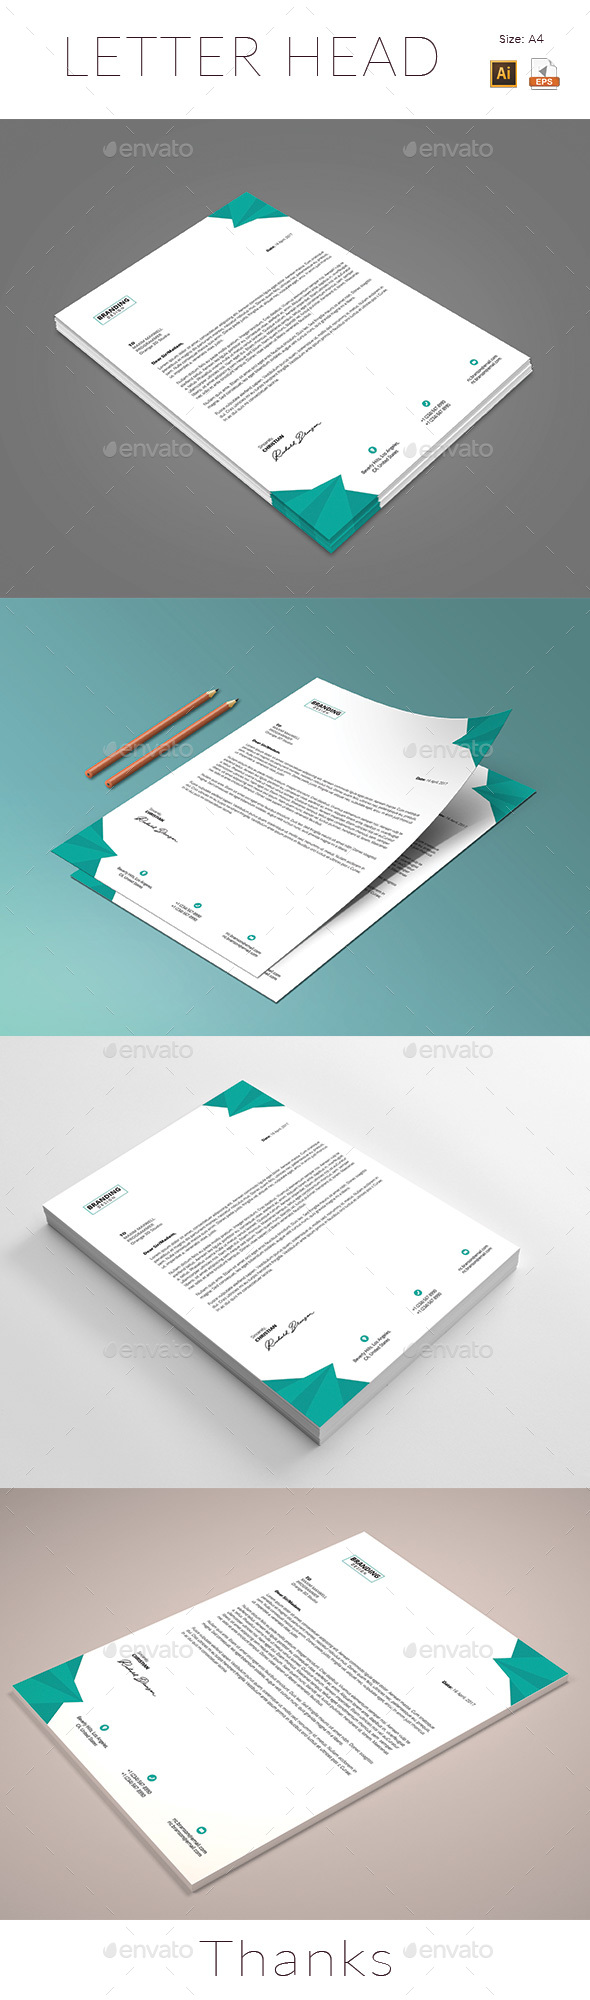 business letter format microsoft word%0A Letterhead Template Vector EPS  AI Illustrator  MS Word